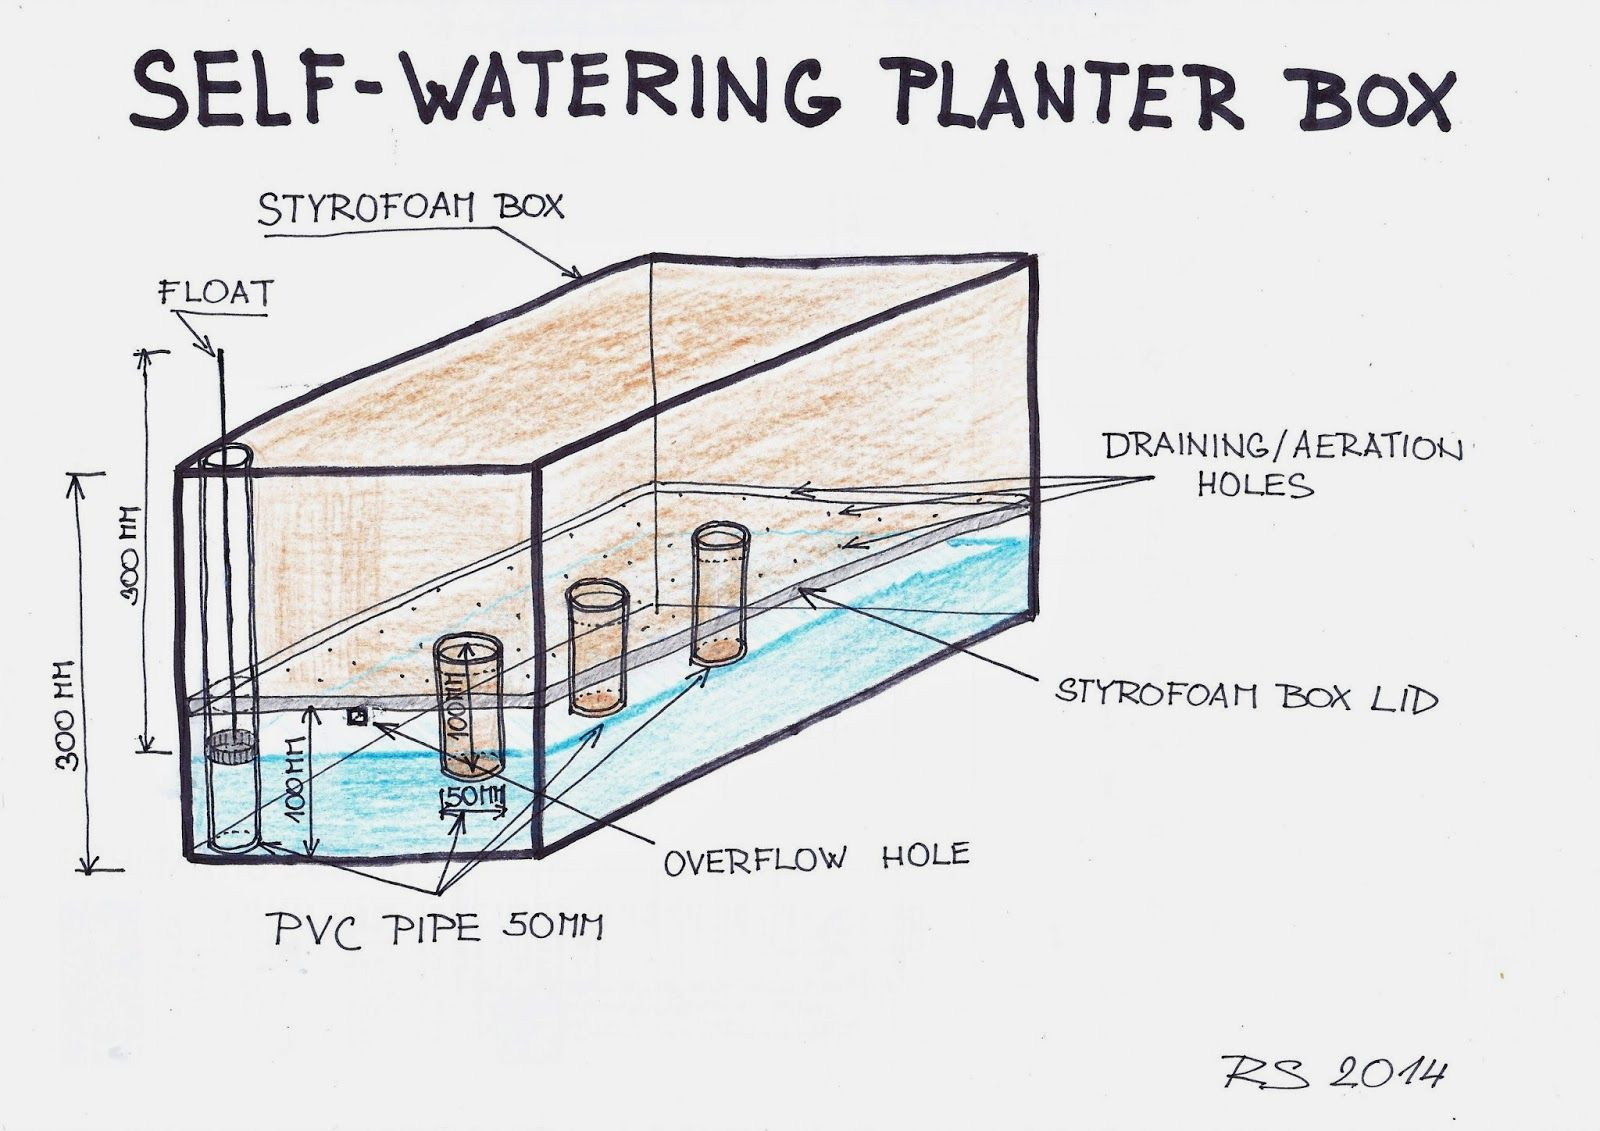 hight resolution of self watering planter box schematic diagram self watering planters